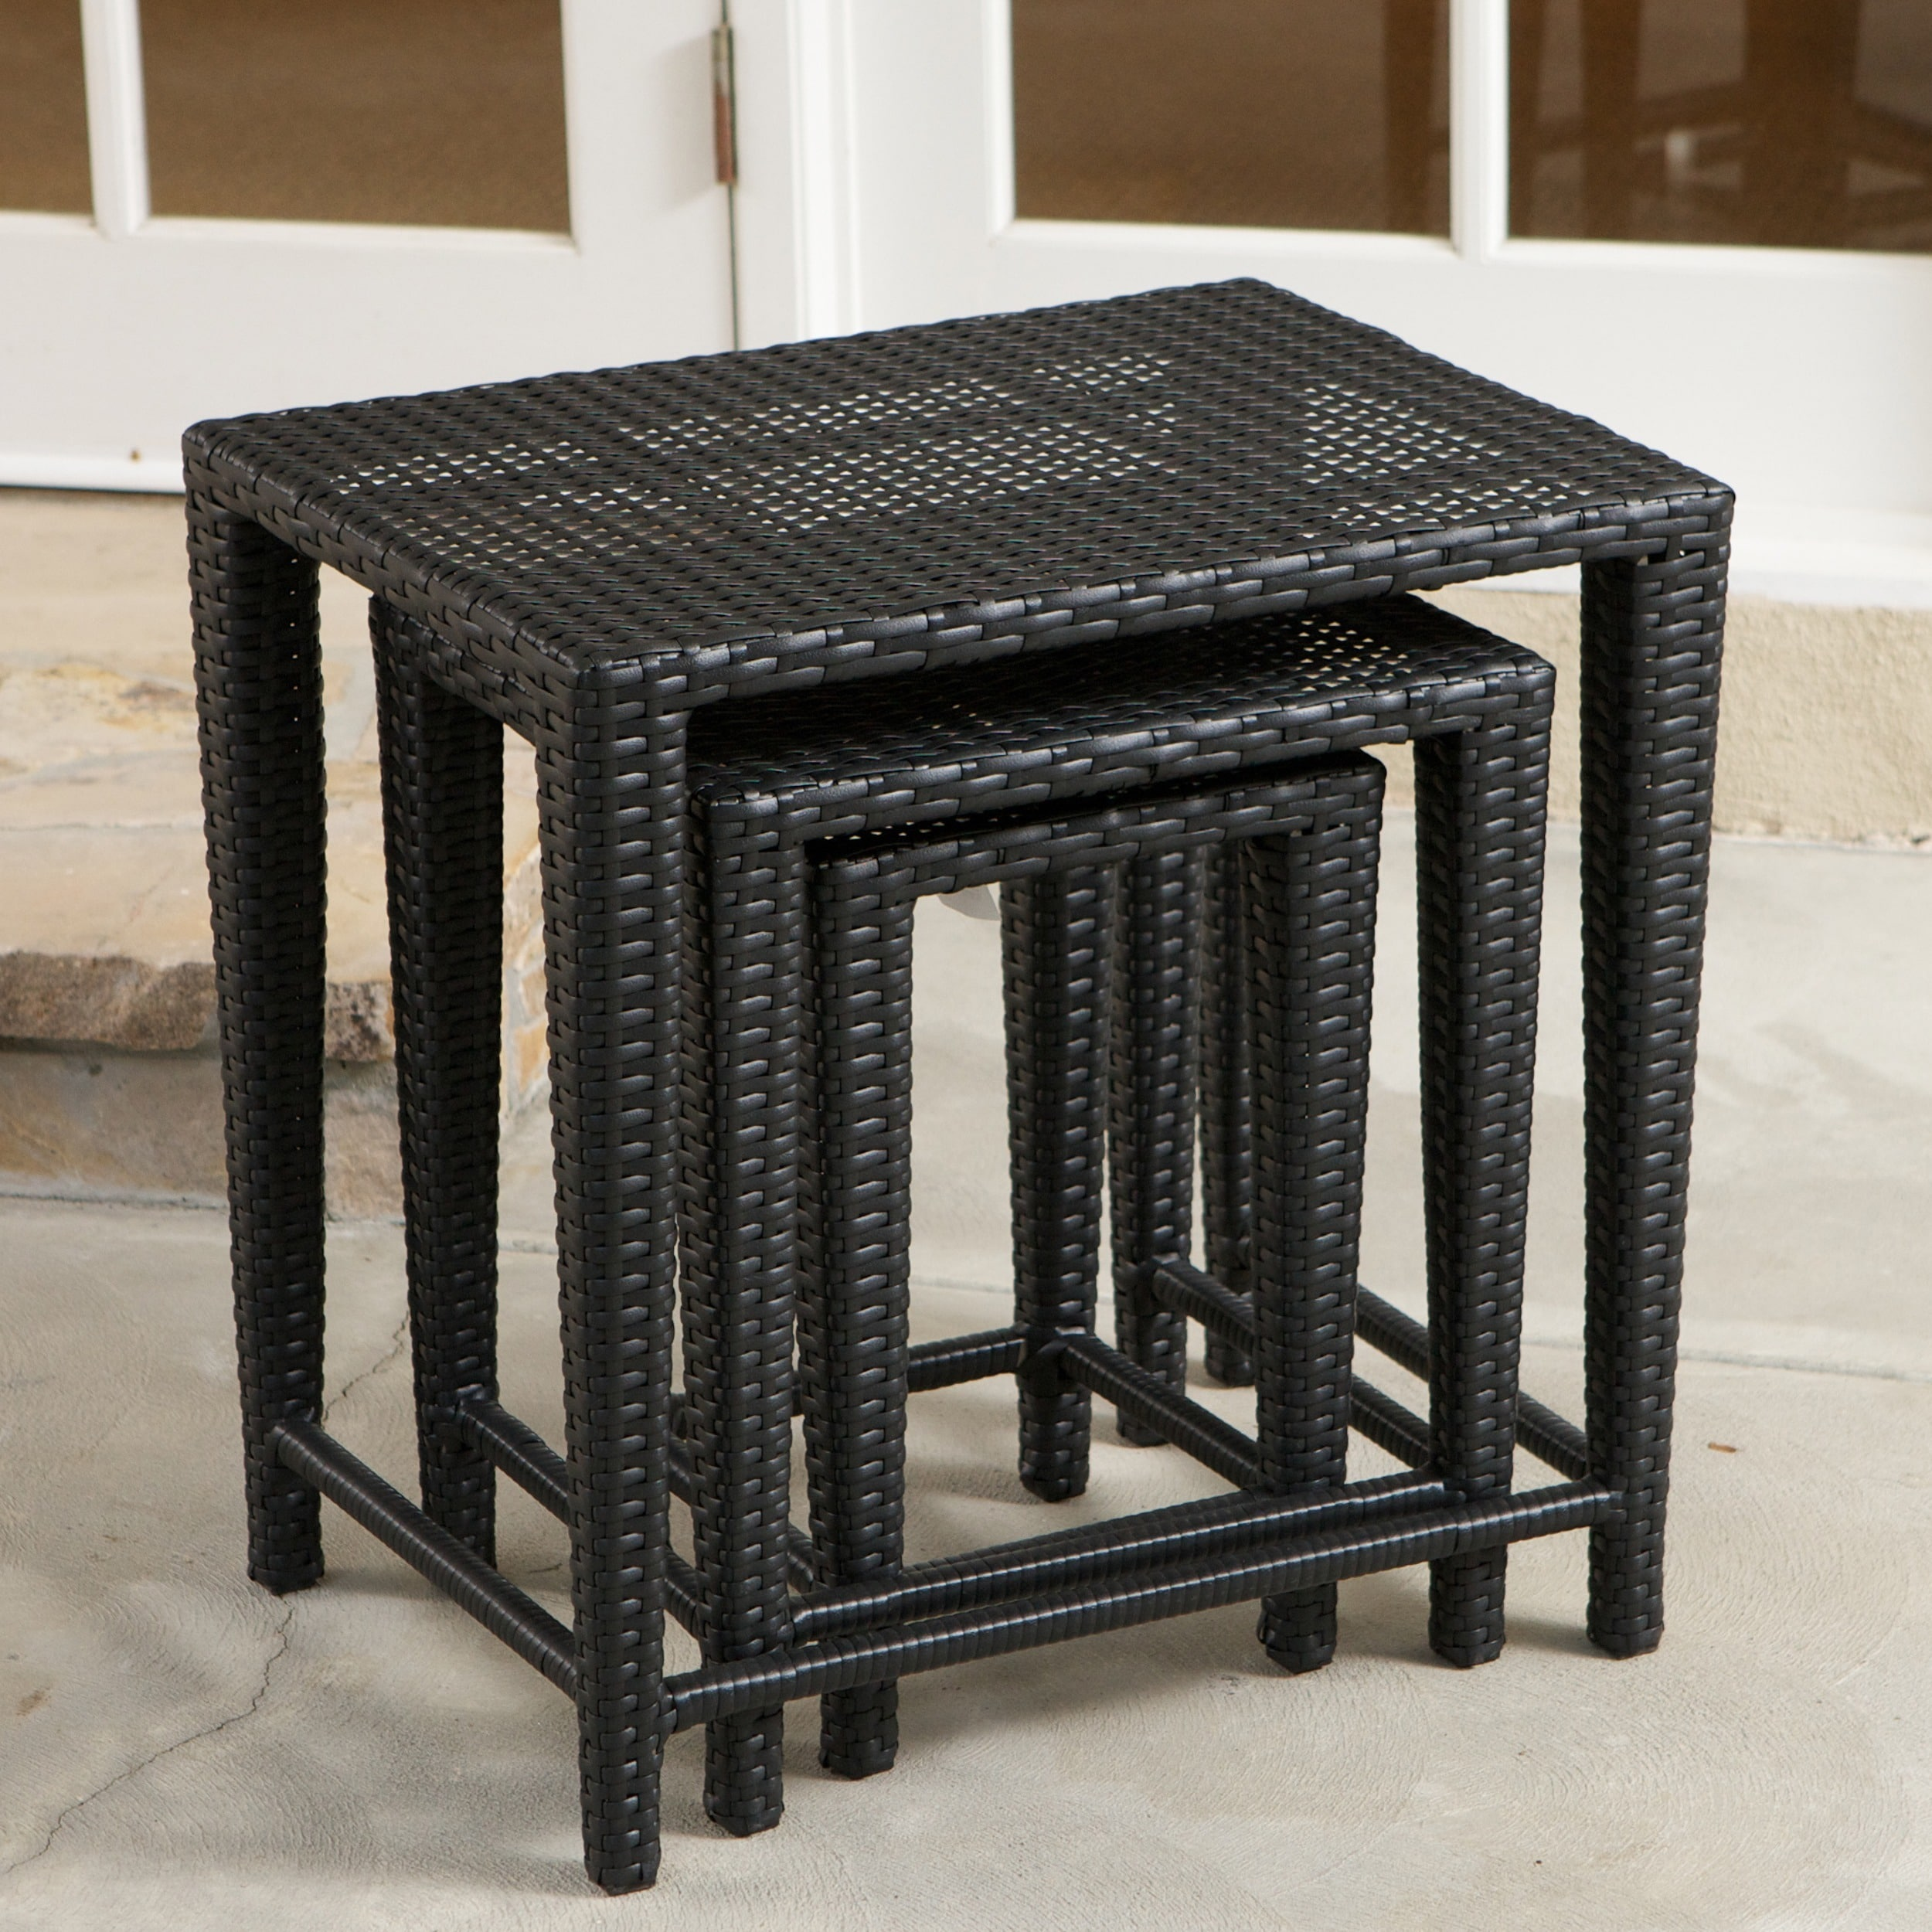 Charmant Shop Outdoor Wicker Nested Tables By Christopher Knight Home (Set Of 3)    On Sale   Ships To Canada   Overstock.ca   6110478